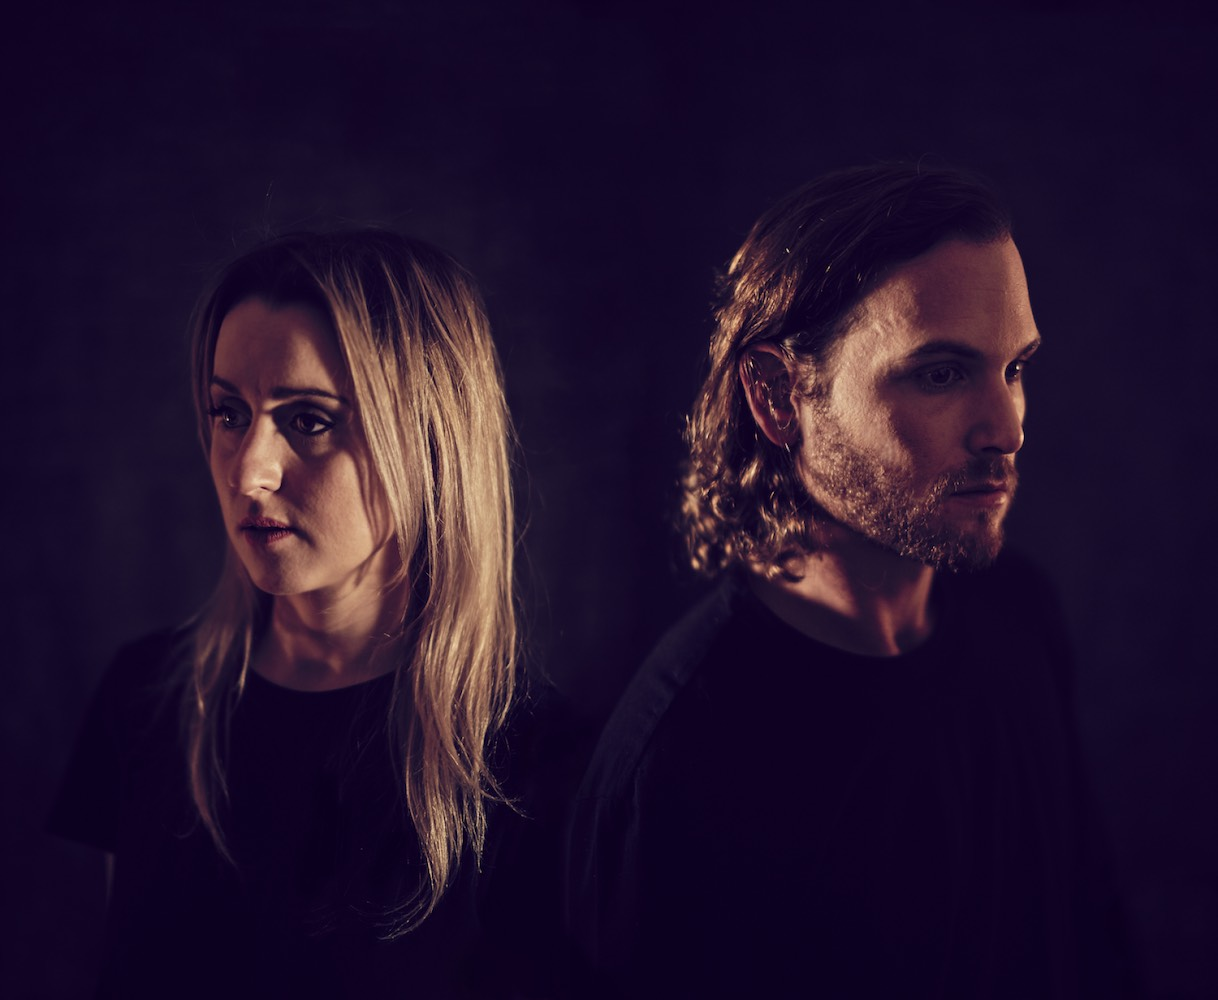 PREMIERE: Belle Mare explore their sound with new EP 'Liars'